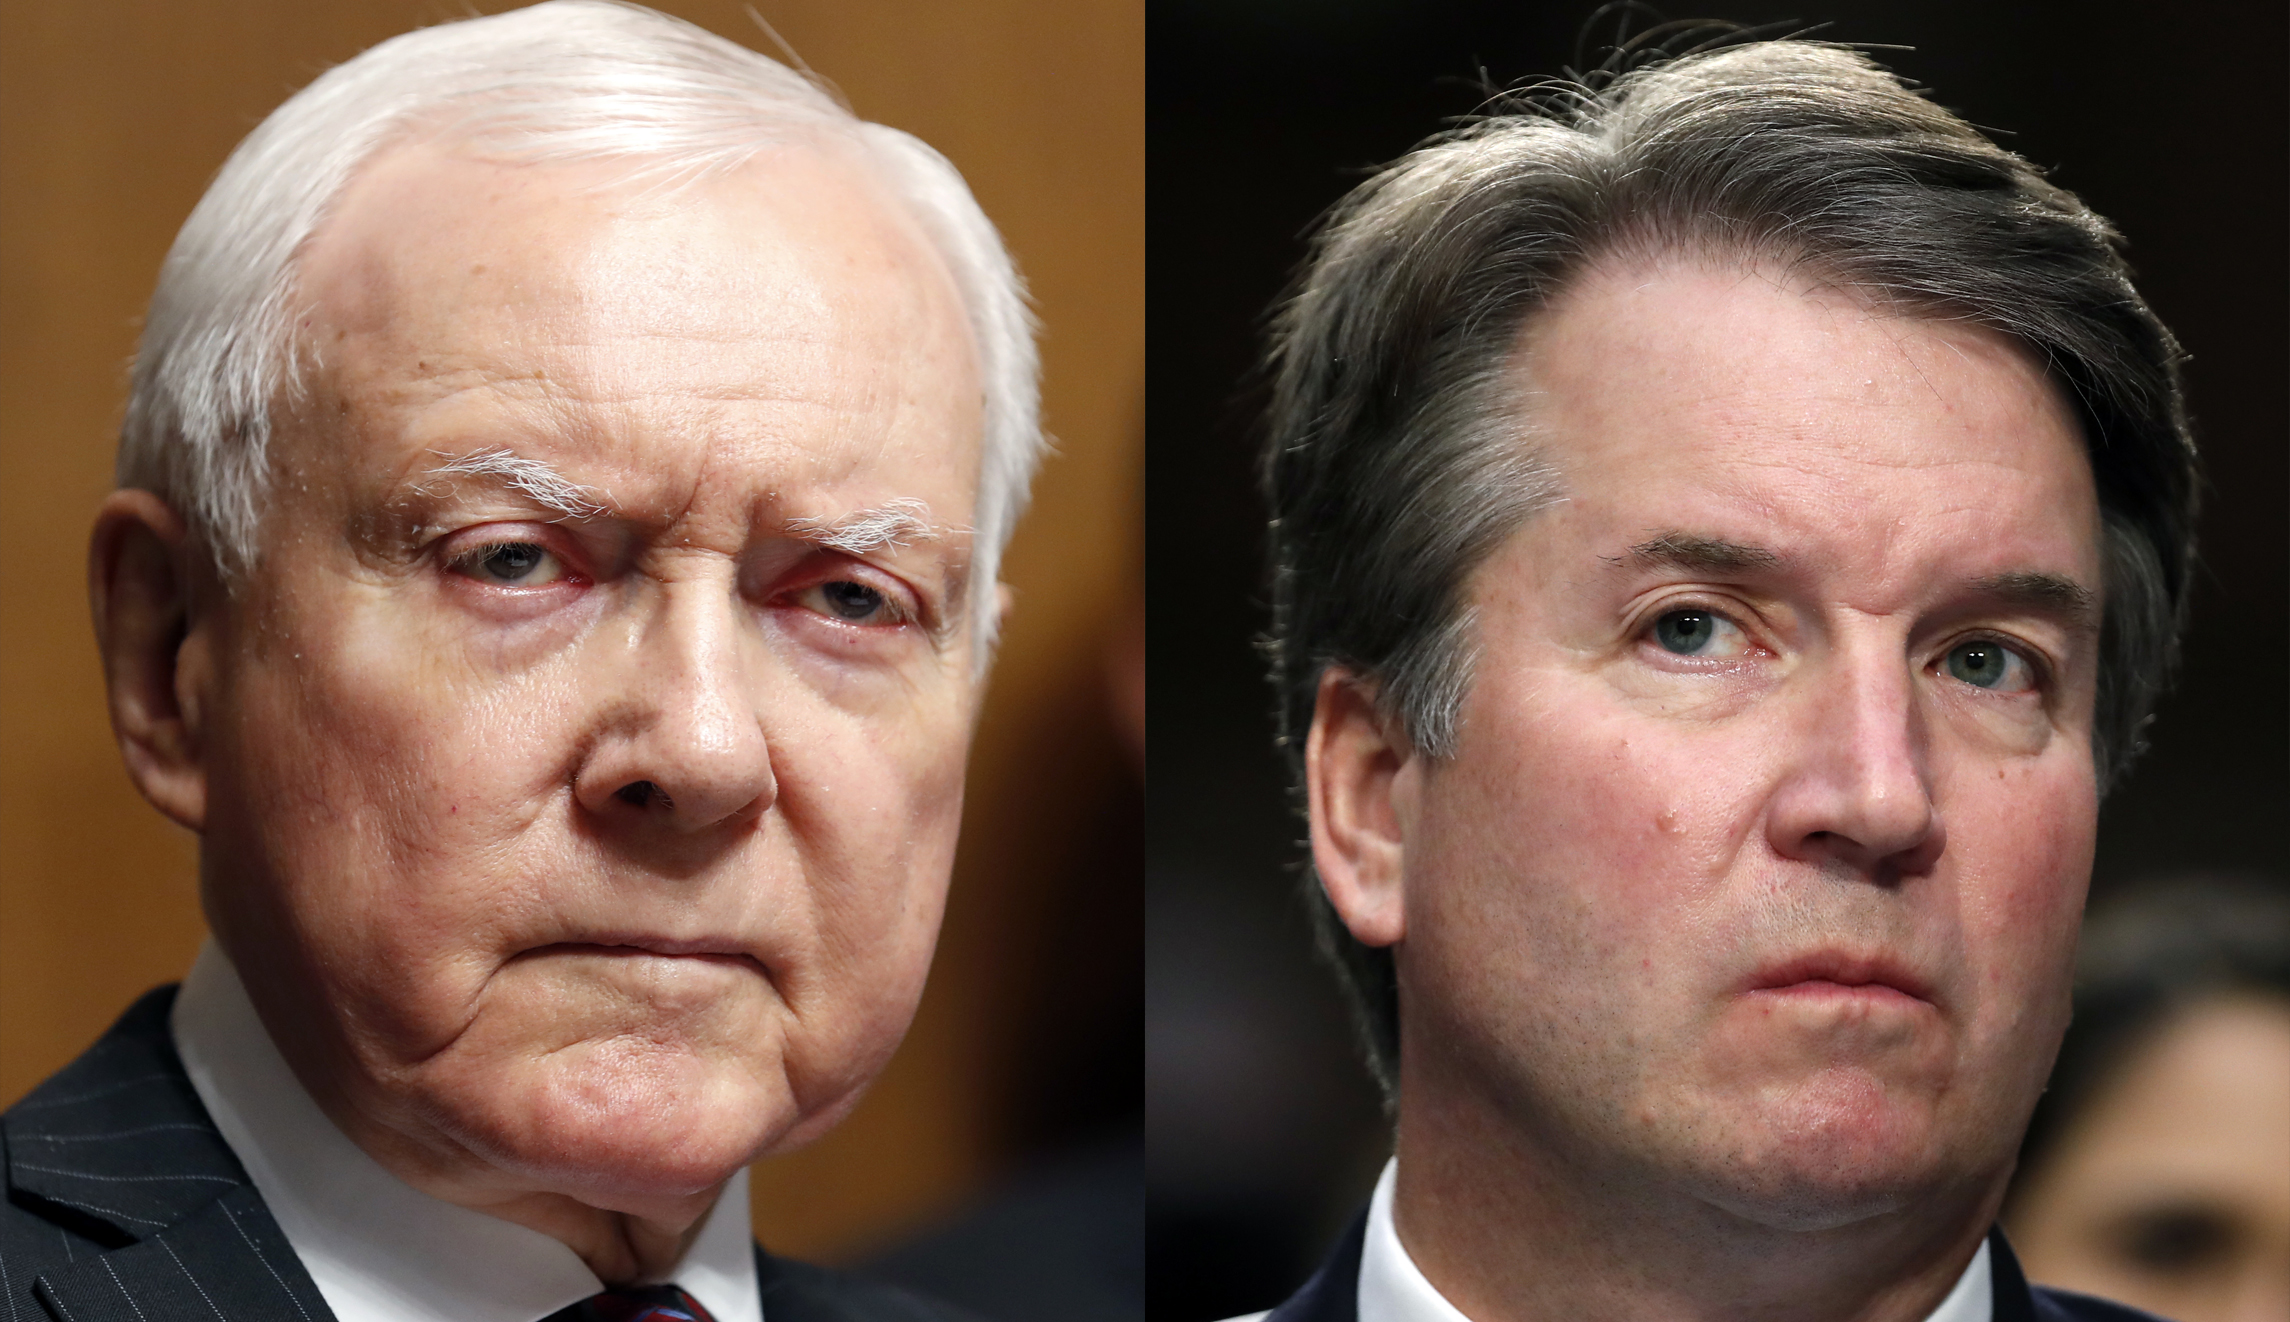 washingtonexaminer.com - Orrin Hatch: 'We are no closer to hearing from Dr. Ford'